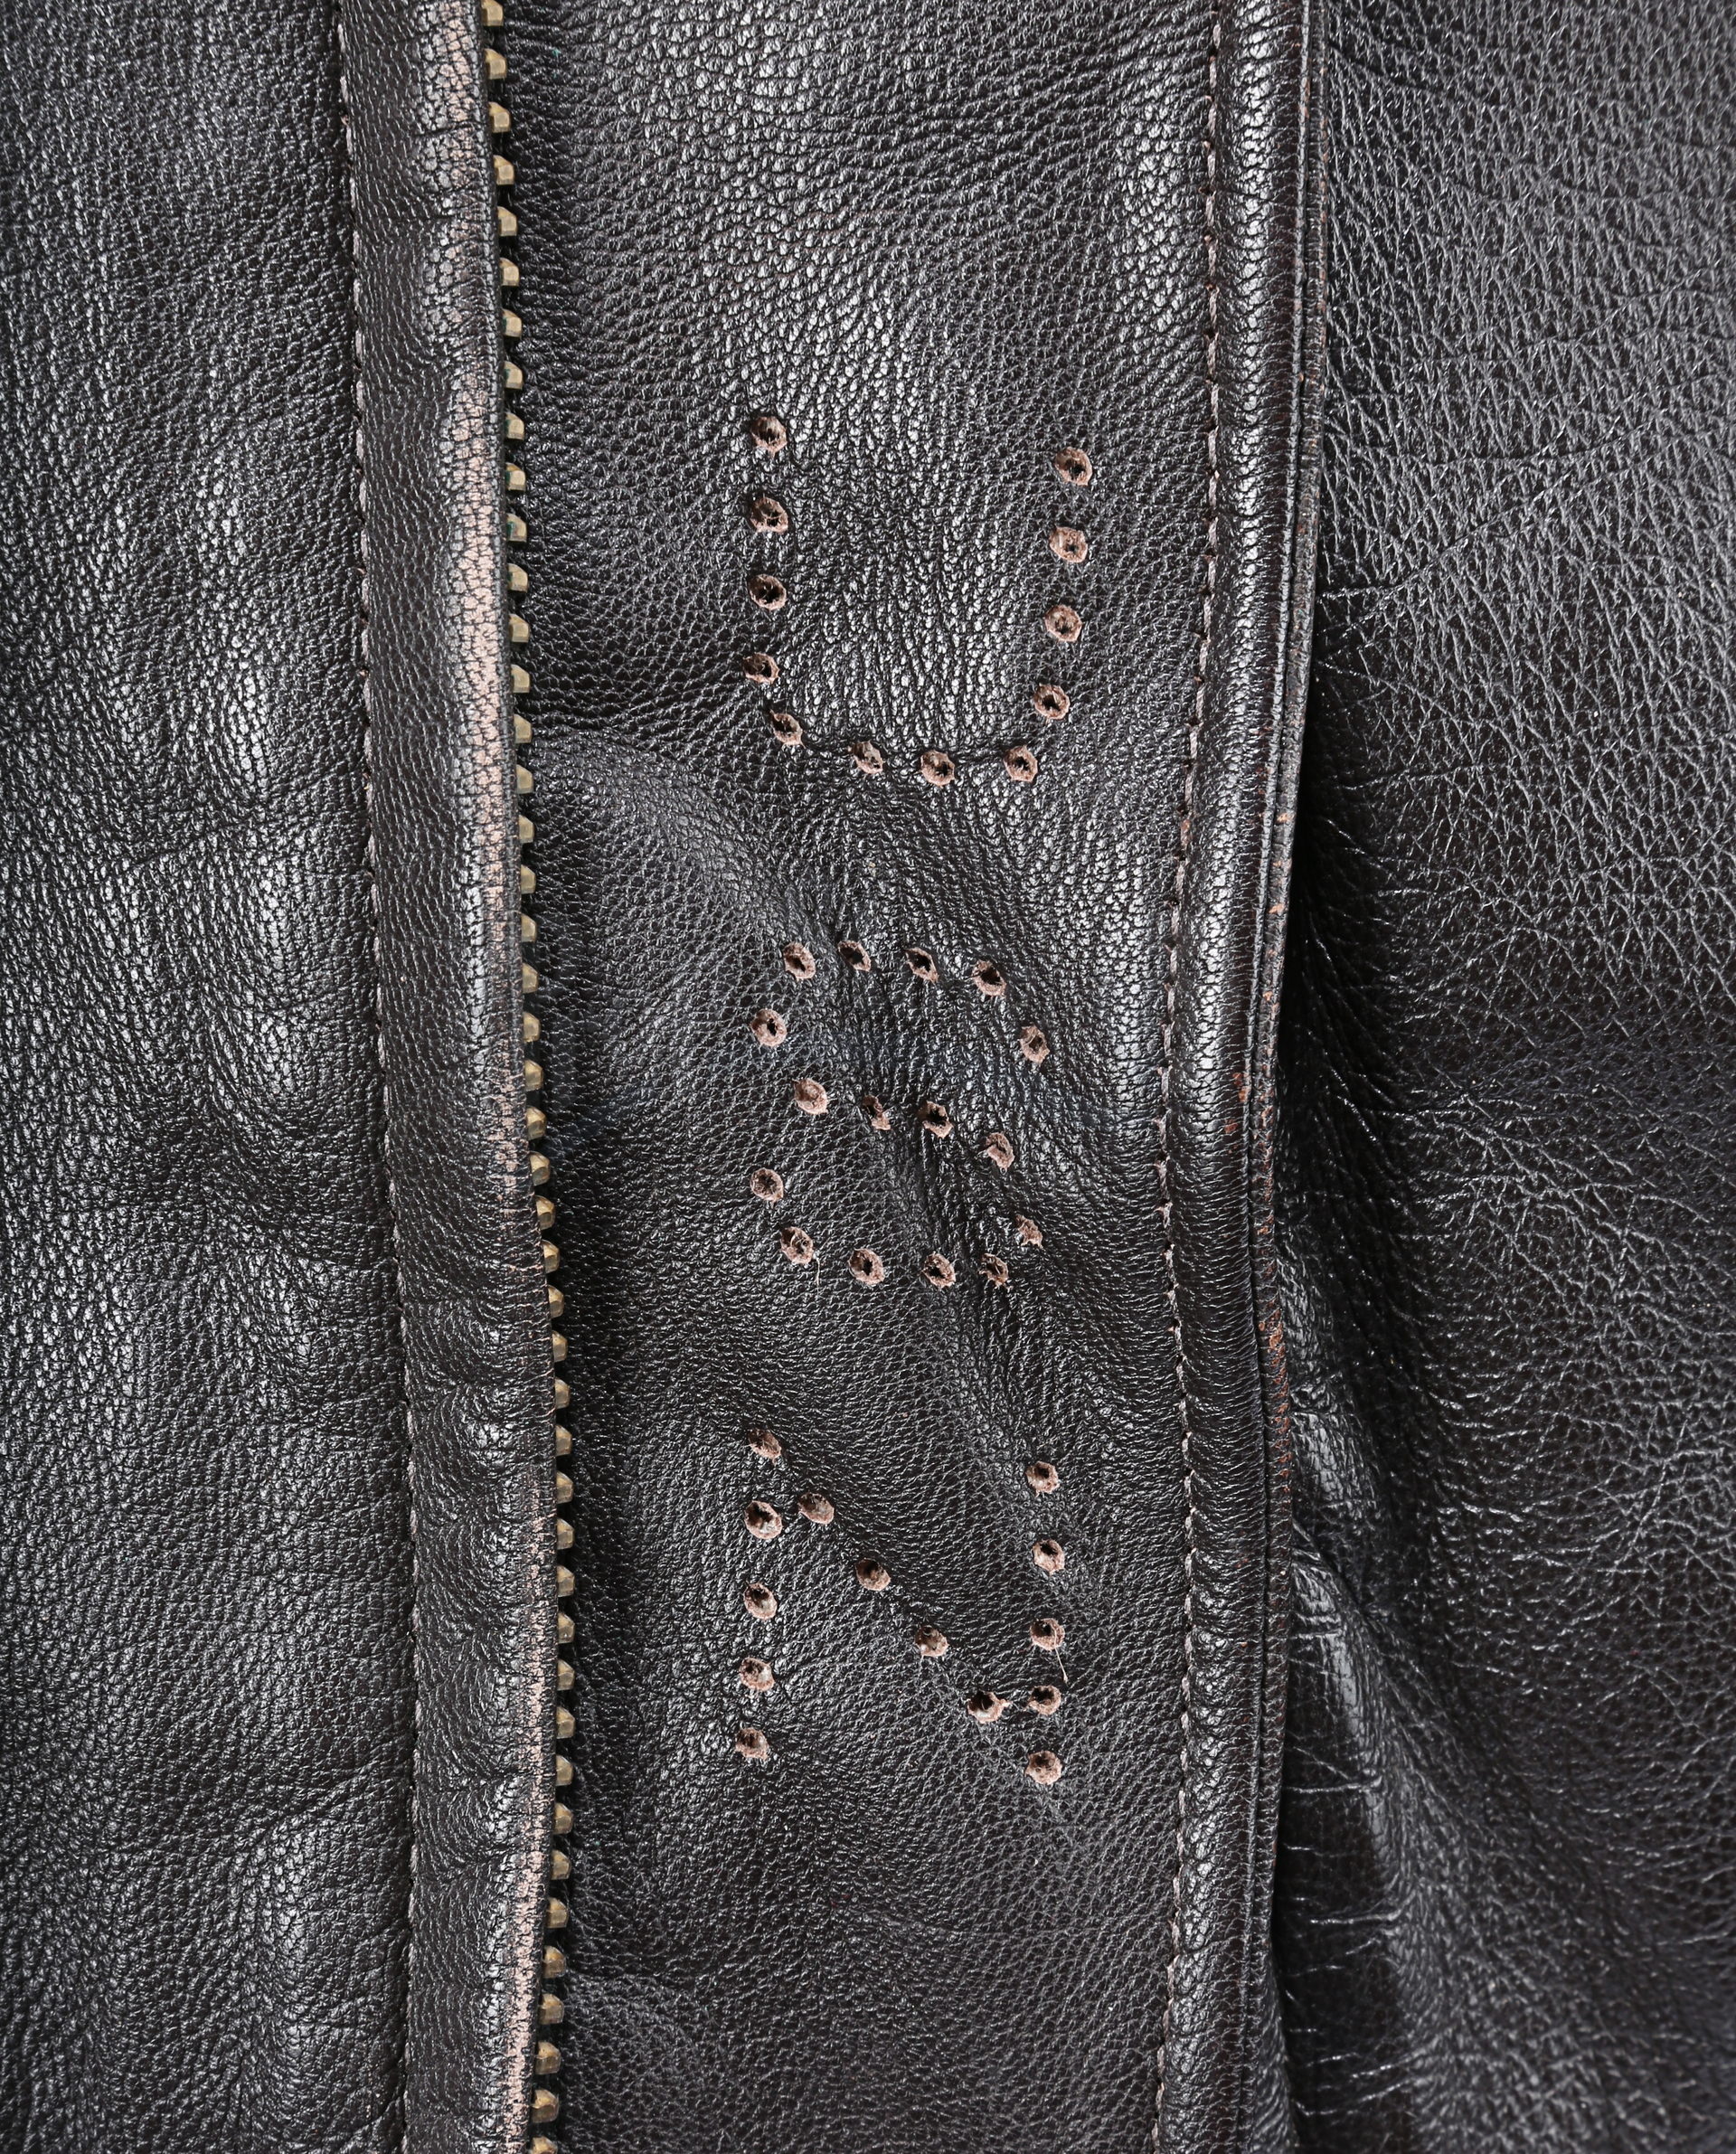 THE 6TH DAY (2000) - Adam Gibson's (Arnold Schwarzenegger) Leather Jacket - Image 10 of 15